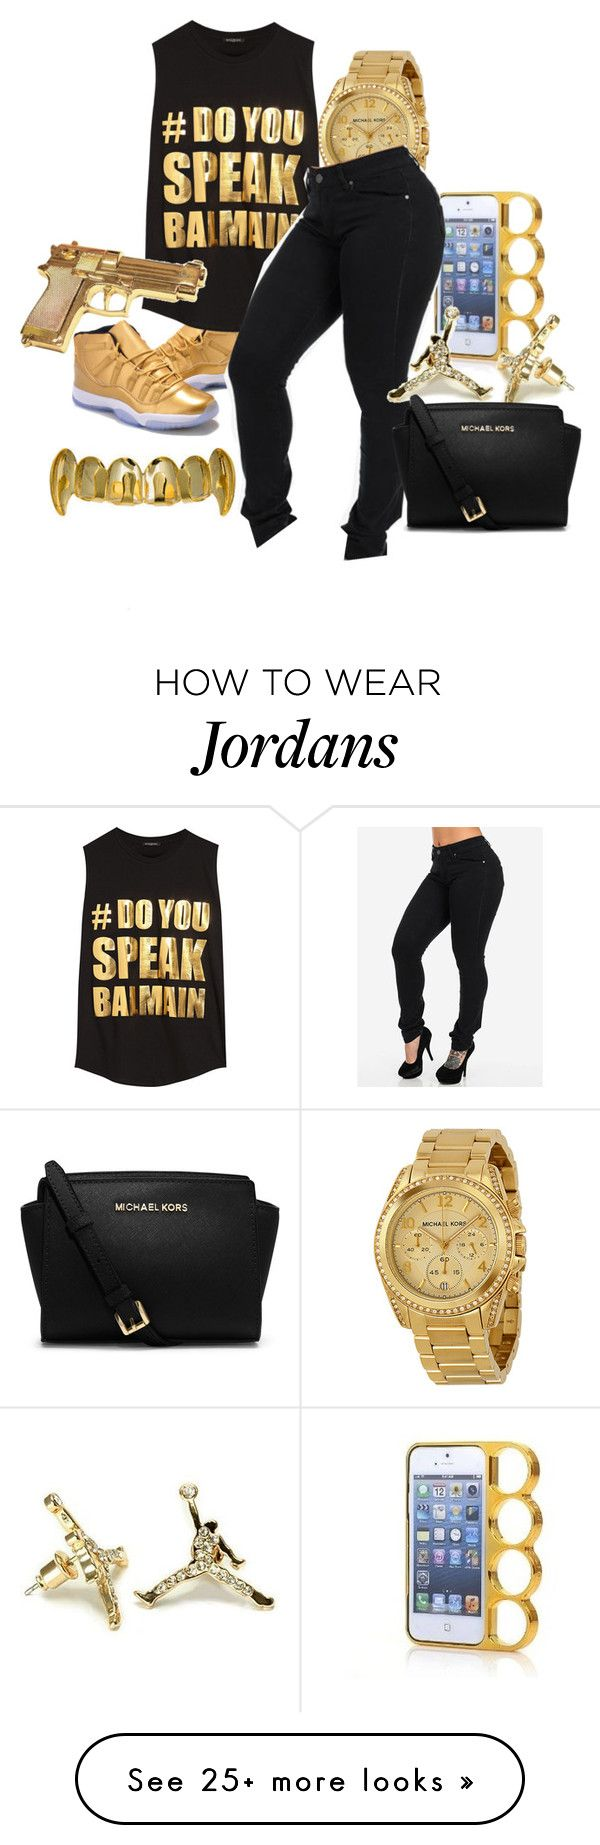 """""""Untitled #124"""" by dejanique-783 on Polyvore featuring Michael Kors, Balmain, Rock Rebel and MICHAEL Michael Kors"""